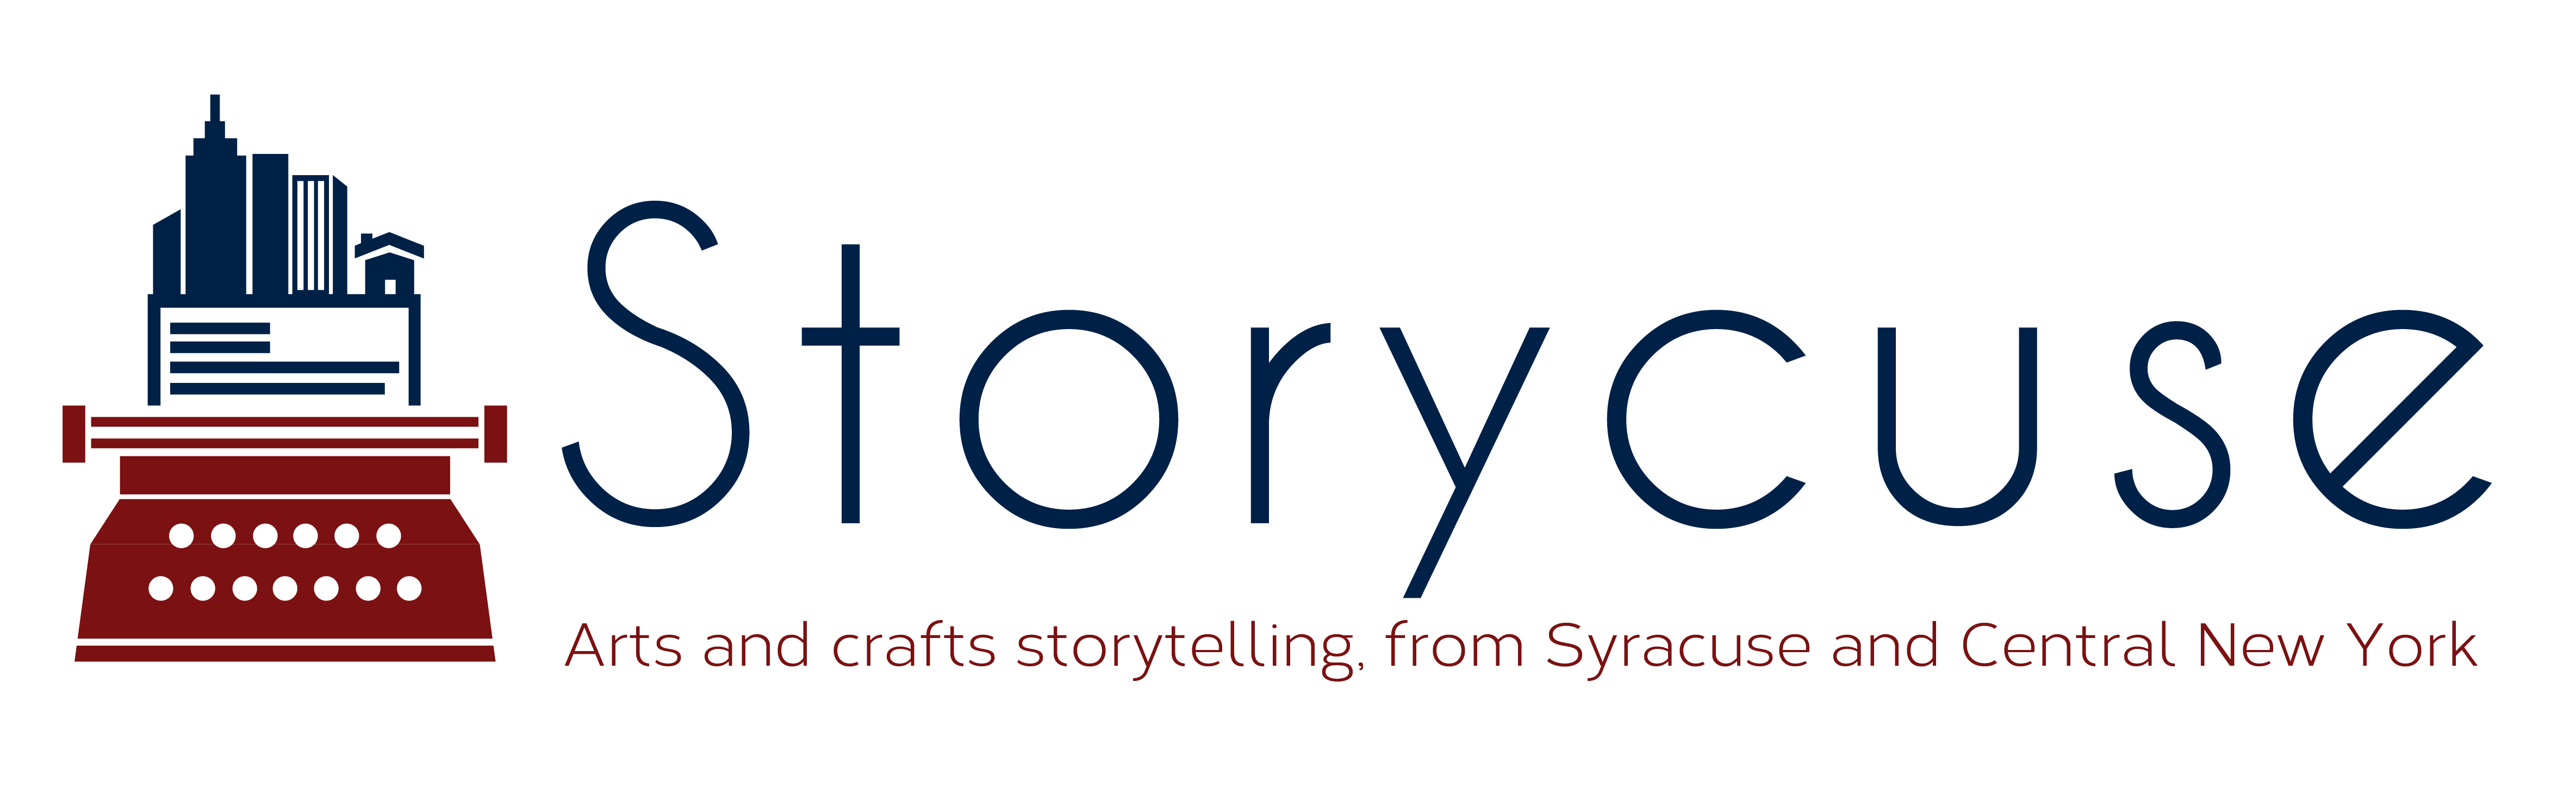 Arts and crafts storytelling, from Syracuse and Central New York